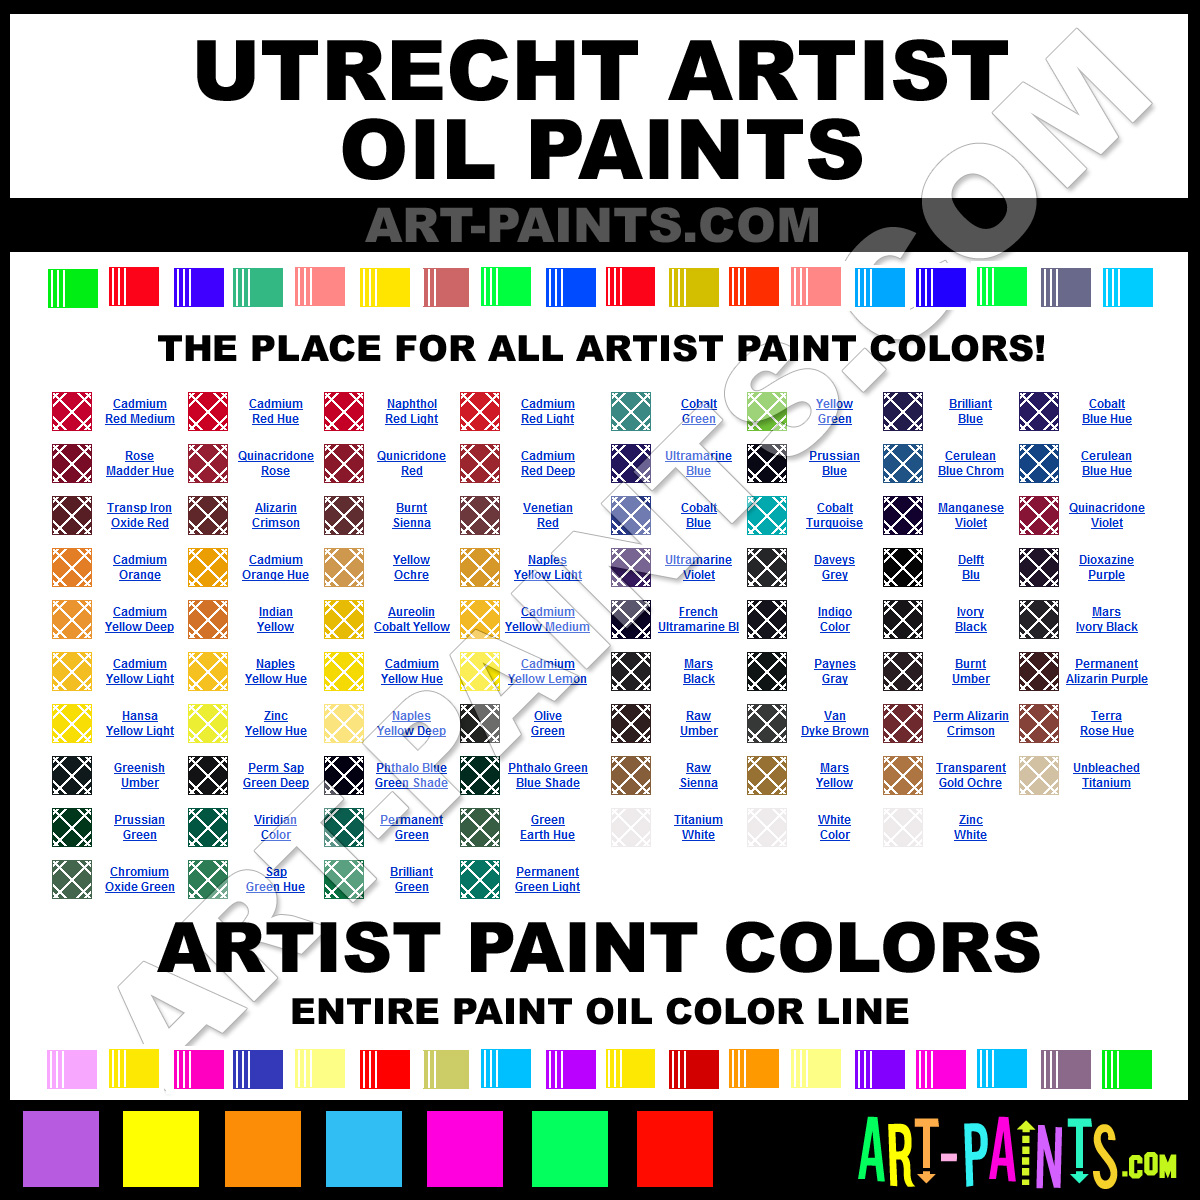 Artist Paint Colors Utrecht Artist Paints